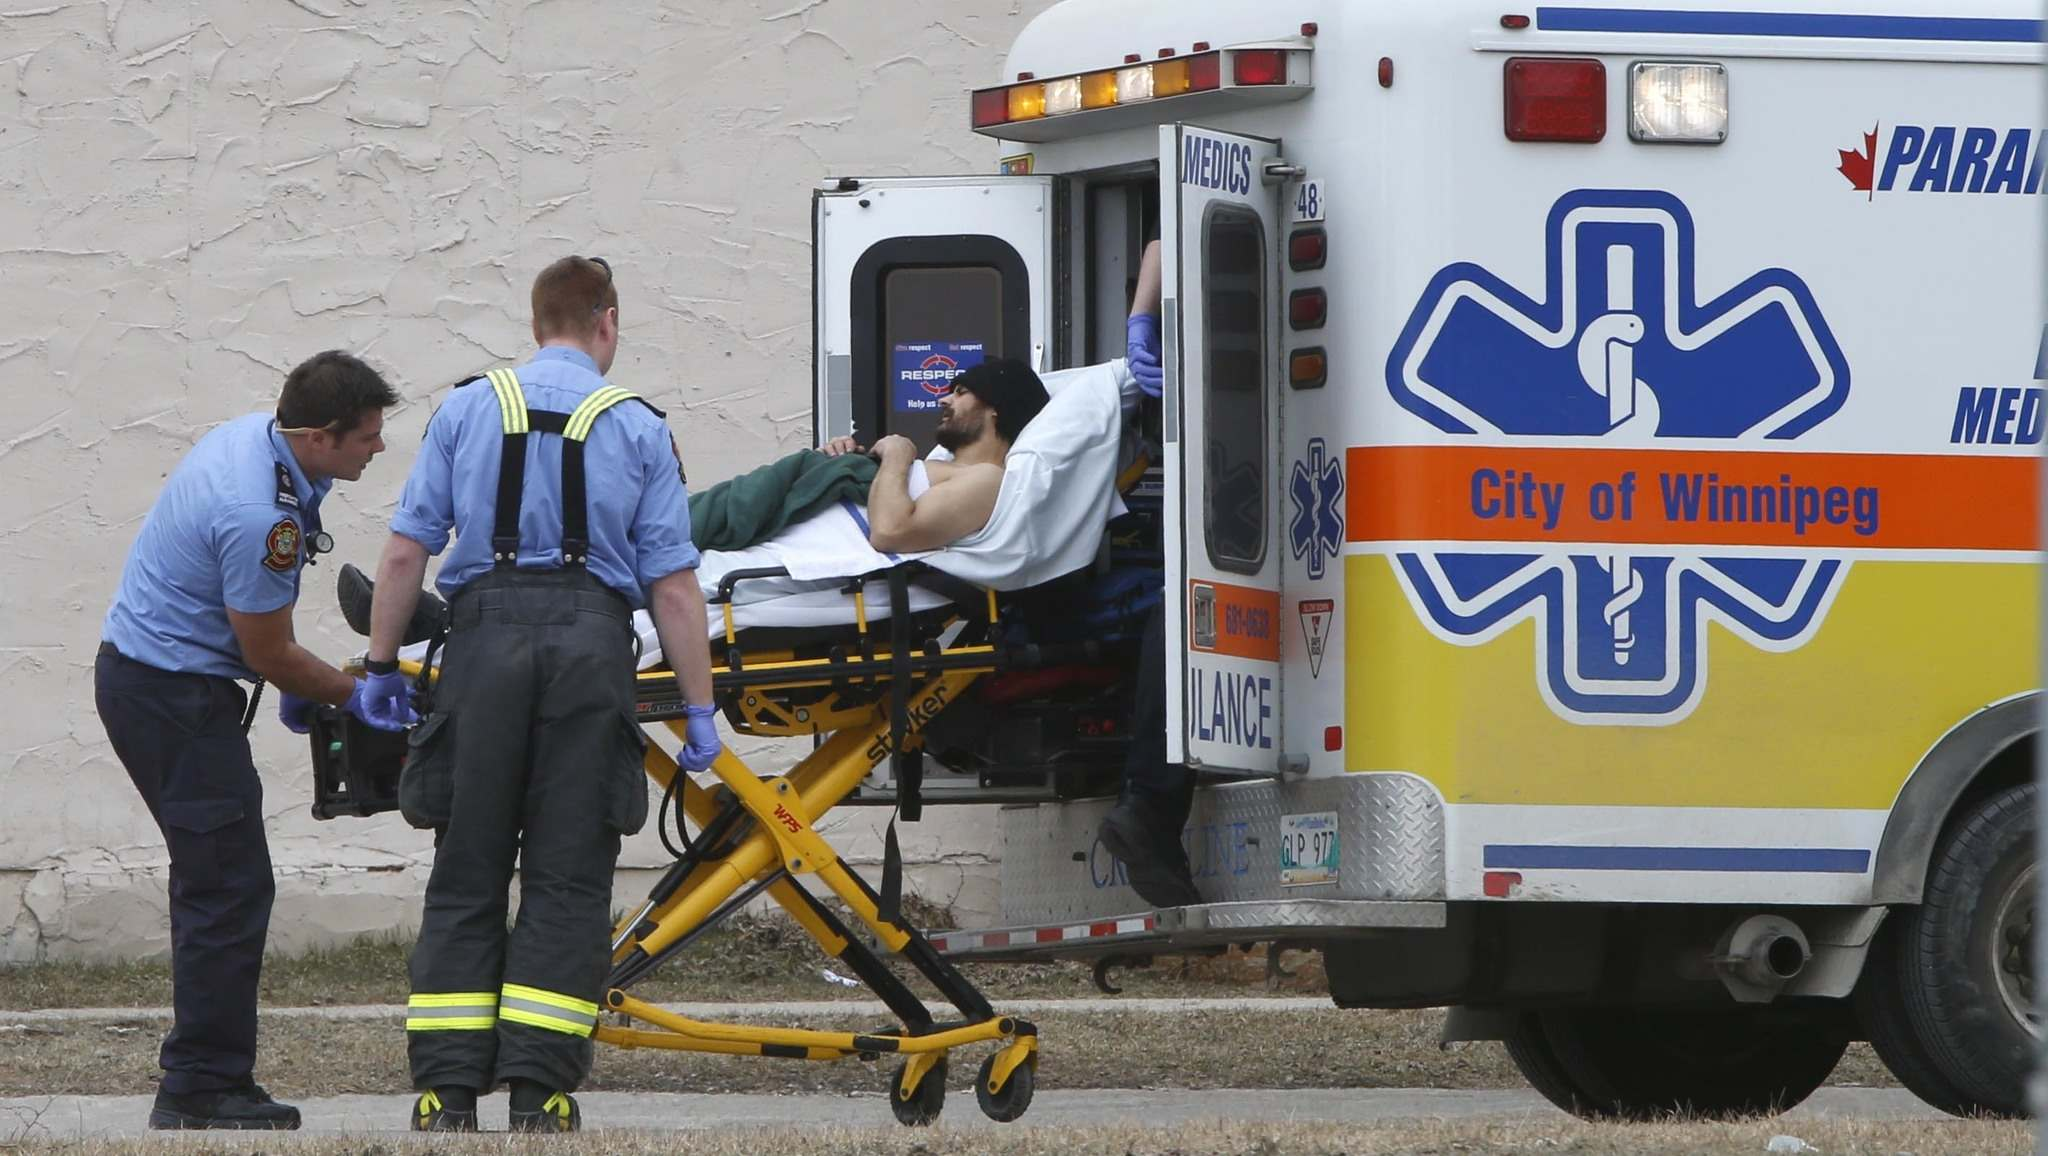 WAYNE GLOWACKI / WINNIPEG FREE PRESS FILES</p><p>Paramedics are one of the few health-care providers in Manitoba not currently included in the Regulated Health Professions Act.</p>